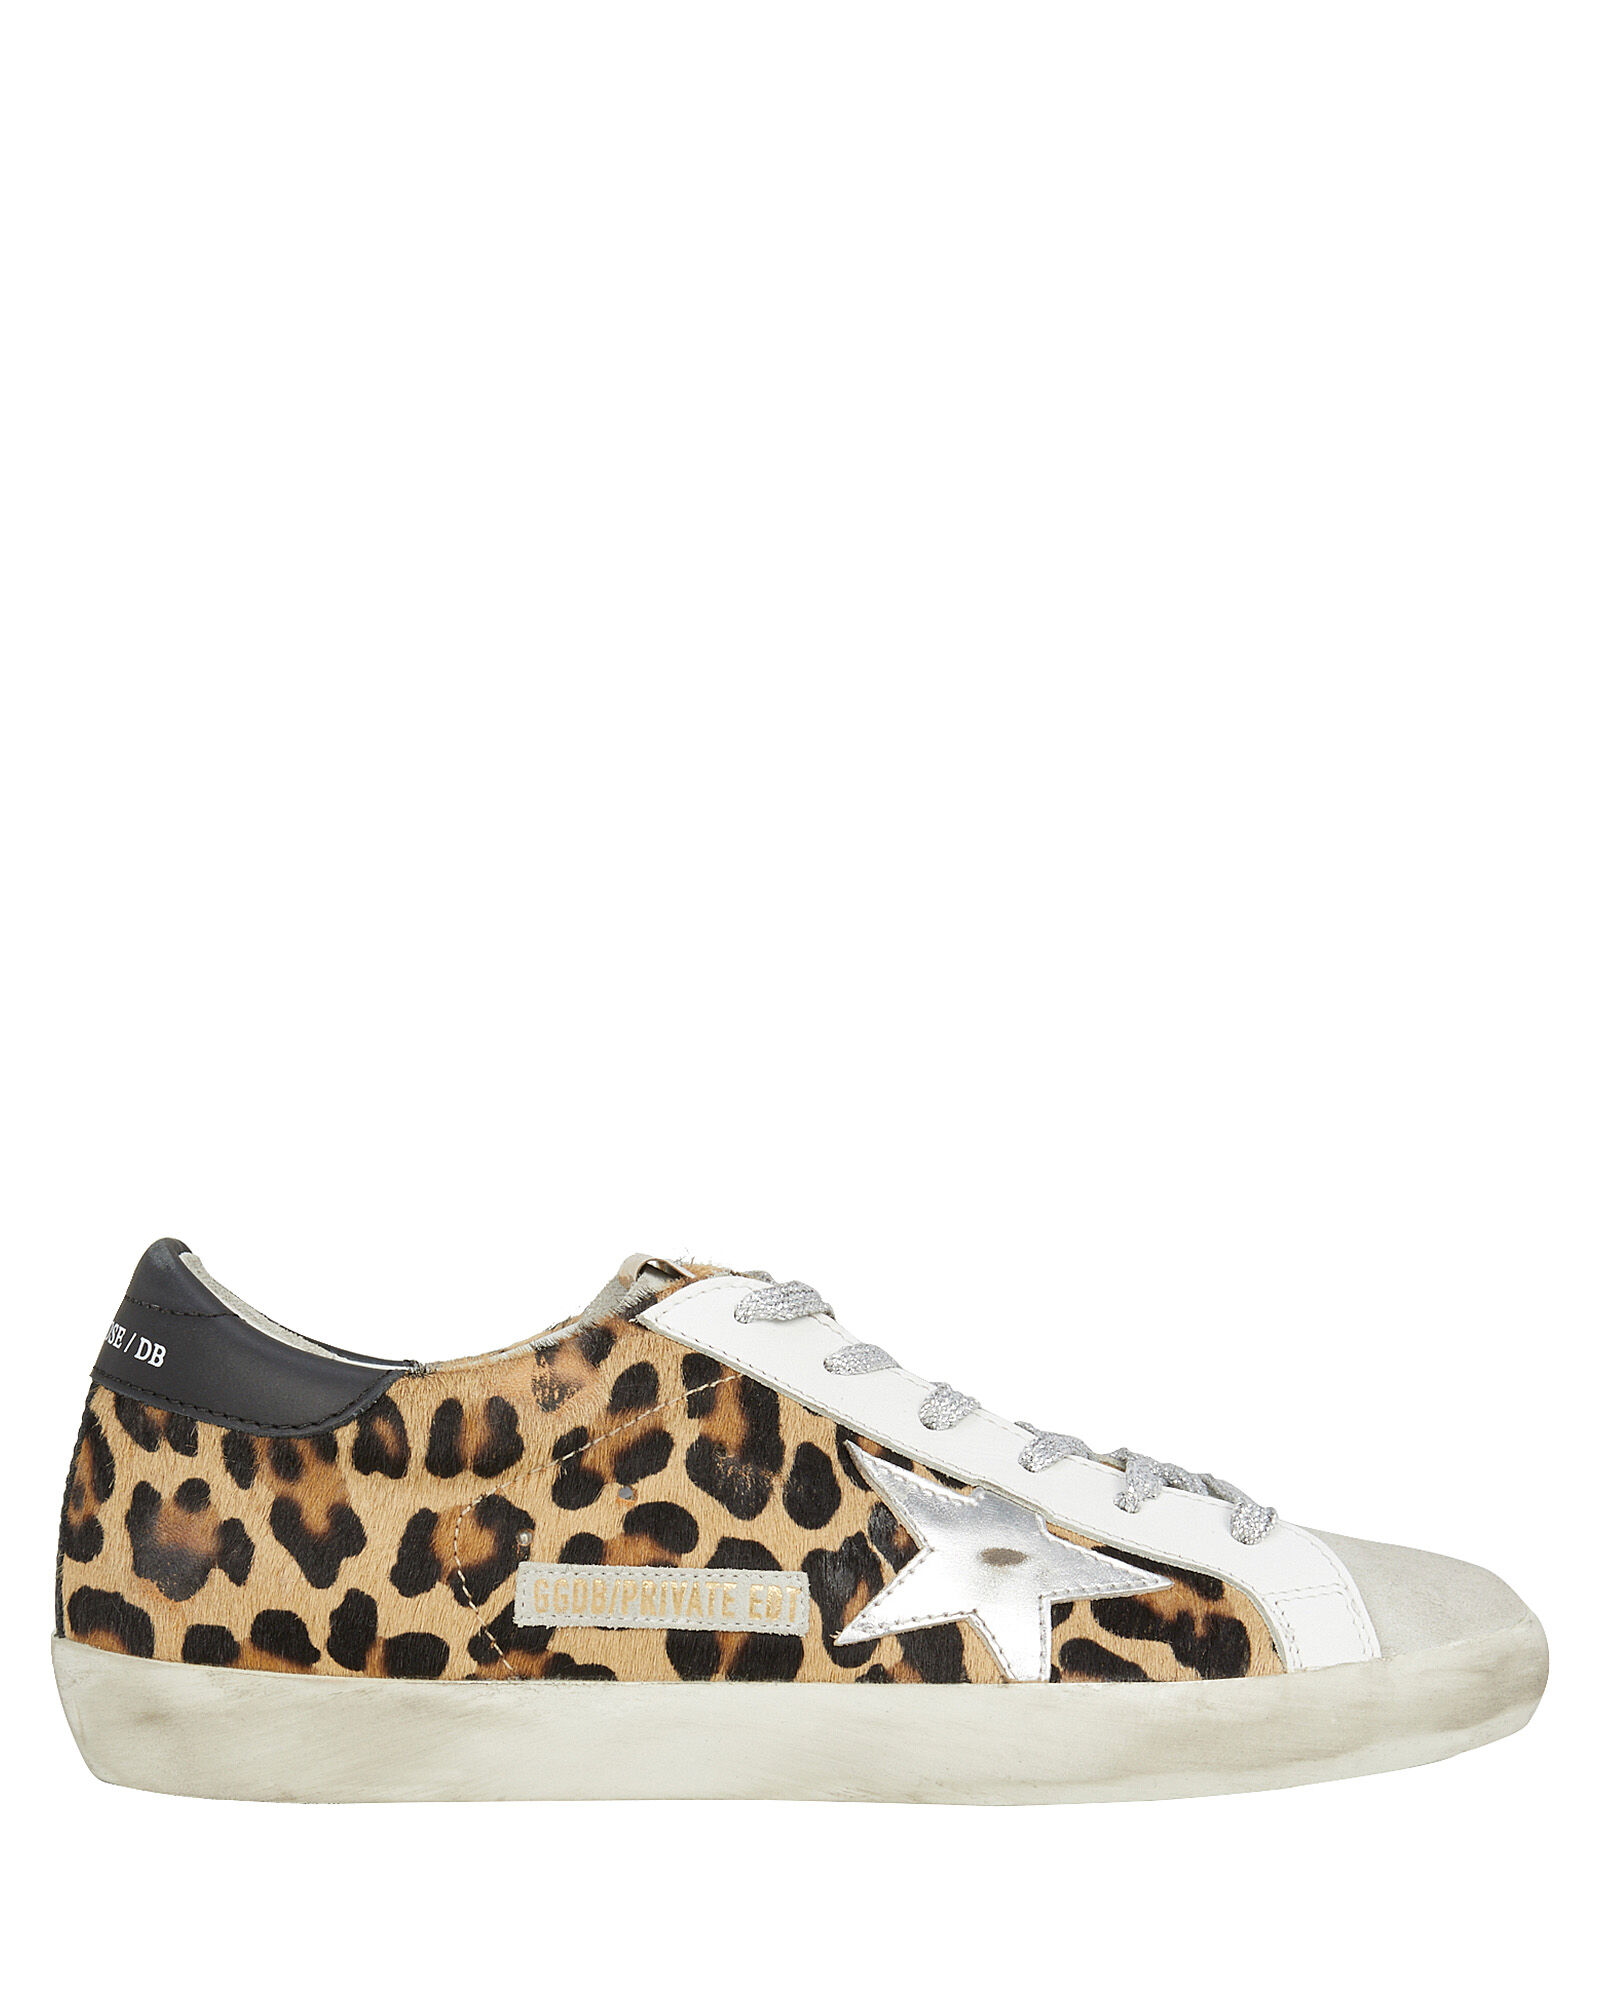 Superstar Leopard Low-Top Sneakers, BROWN, hi-res